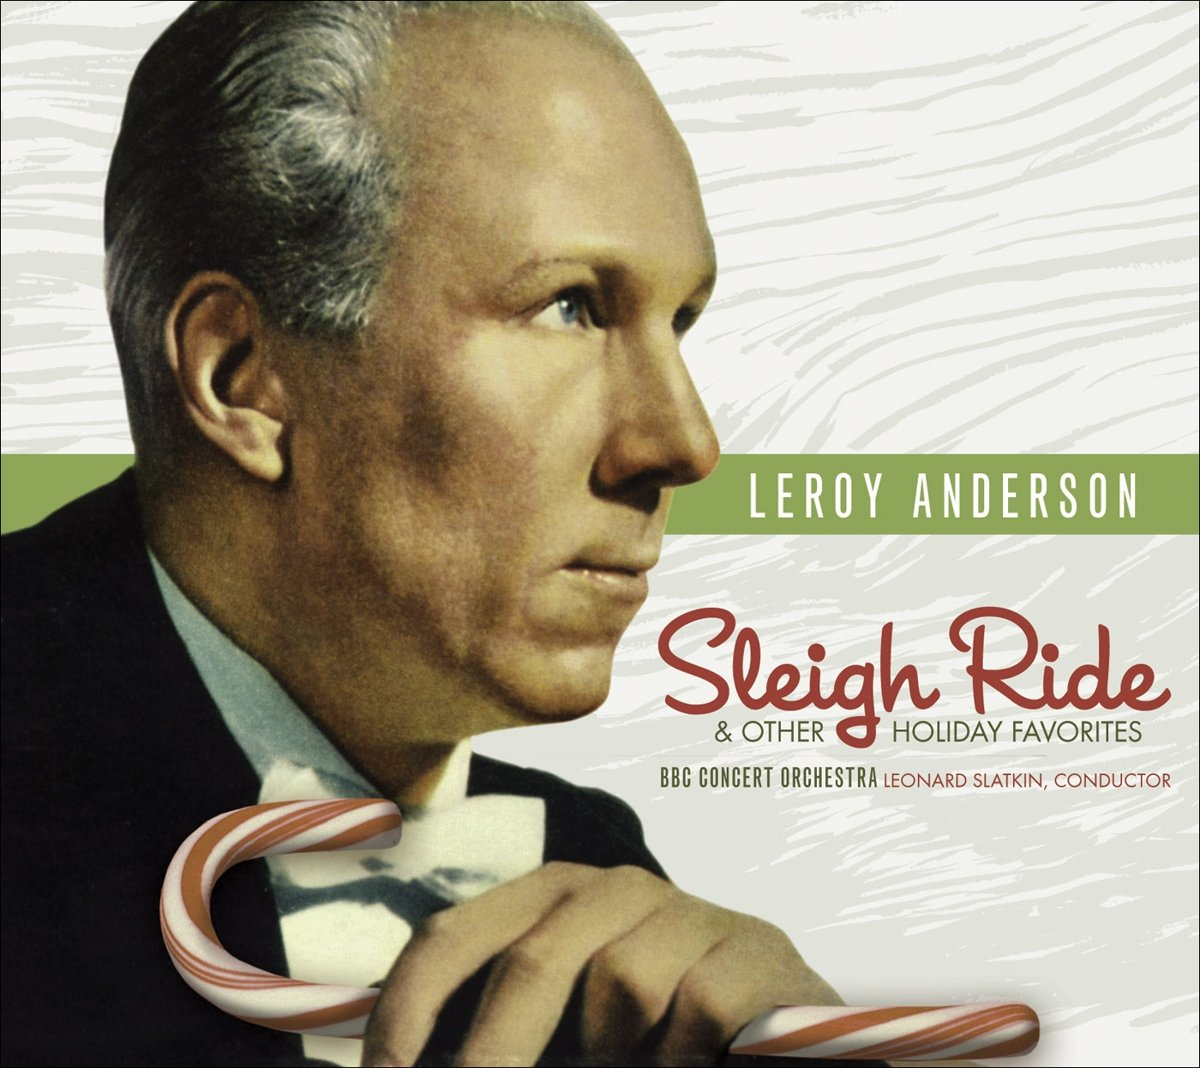 Sleigh Ride & Other Holiday Favorites